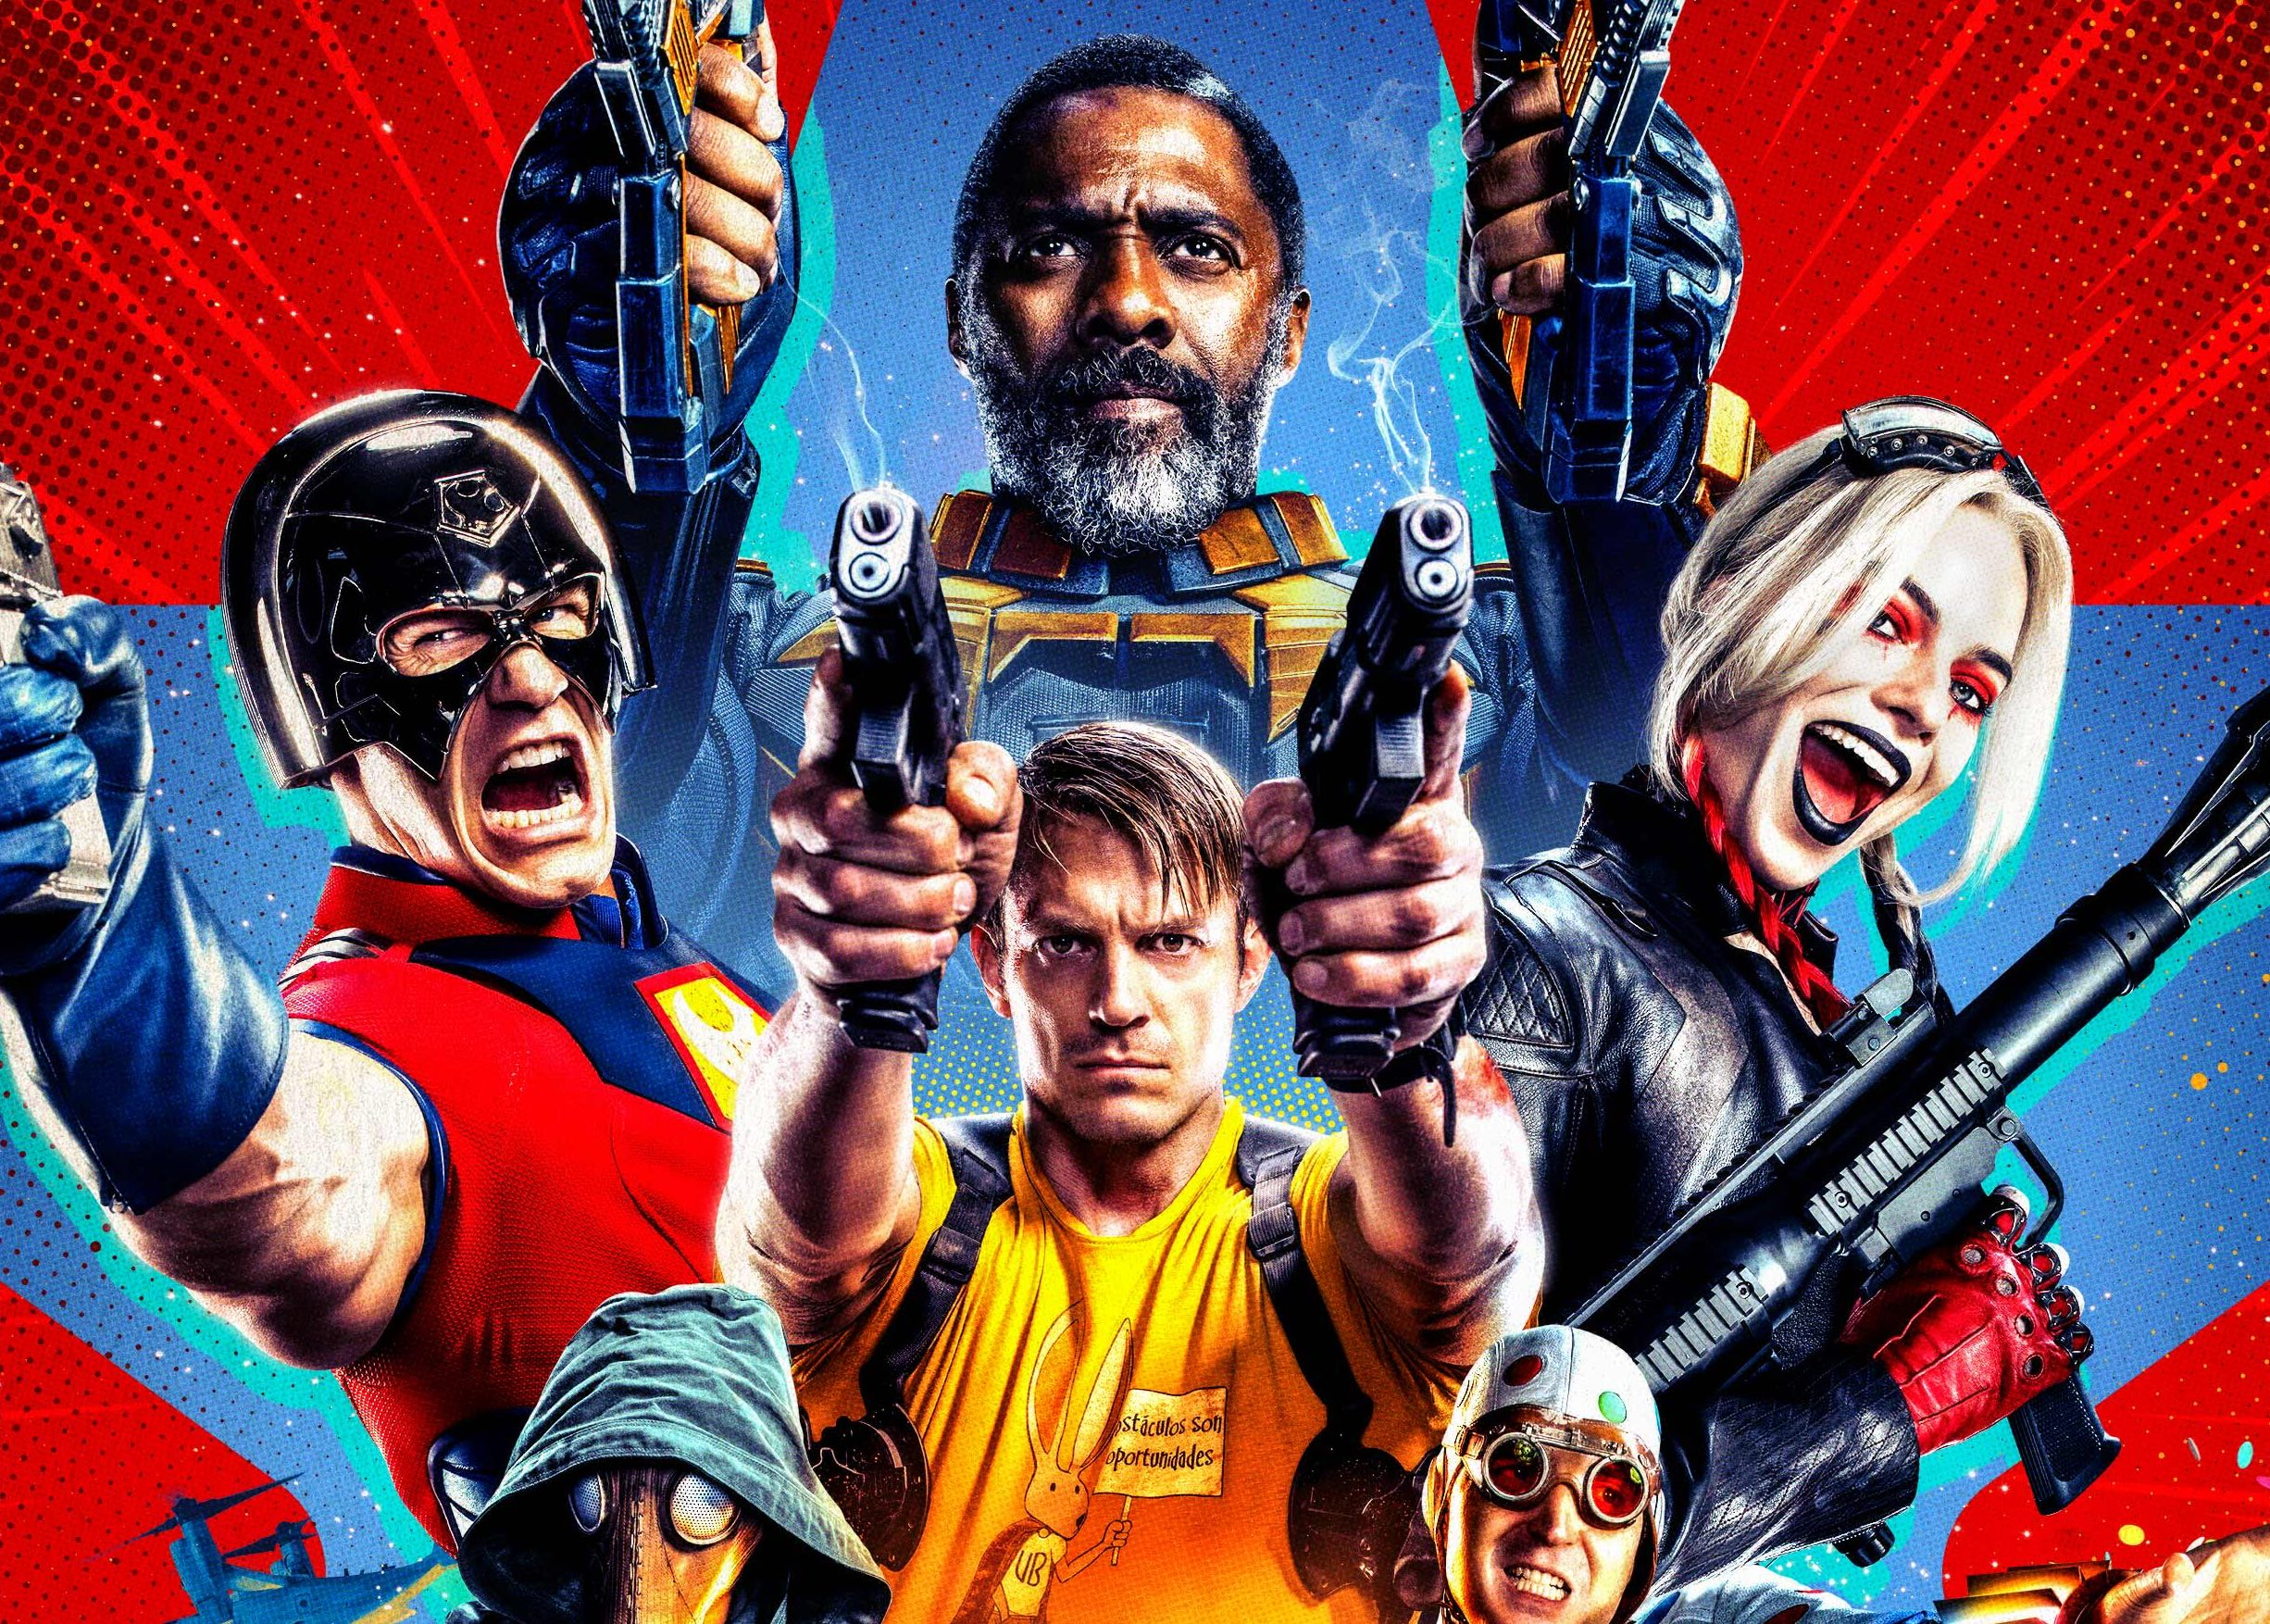 James Gunn's 'Suicide Squad' is a huge success thanks to Marvel's mistakes